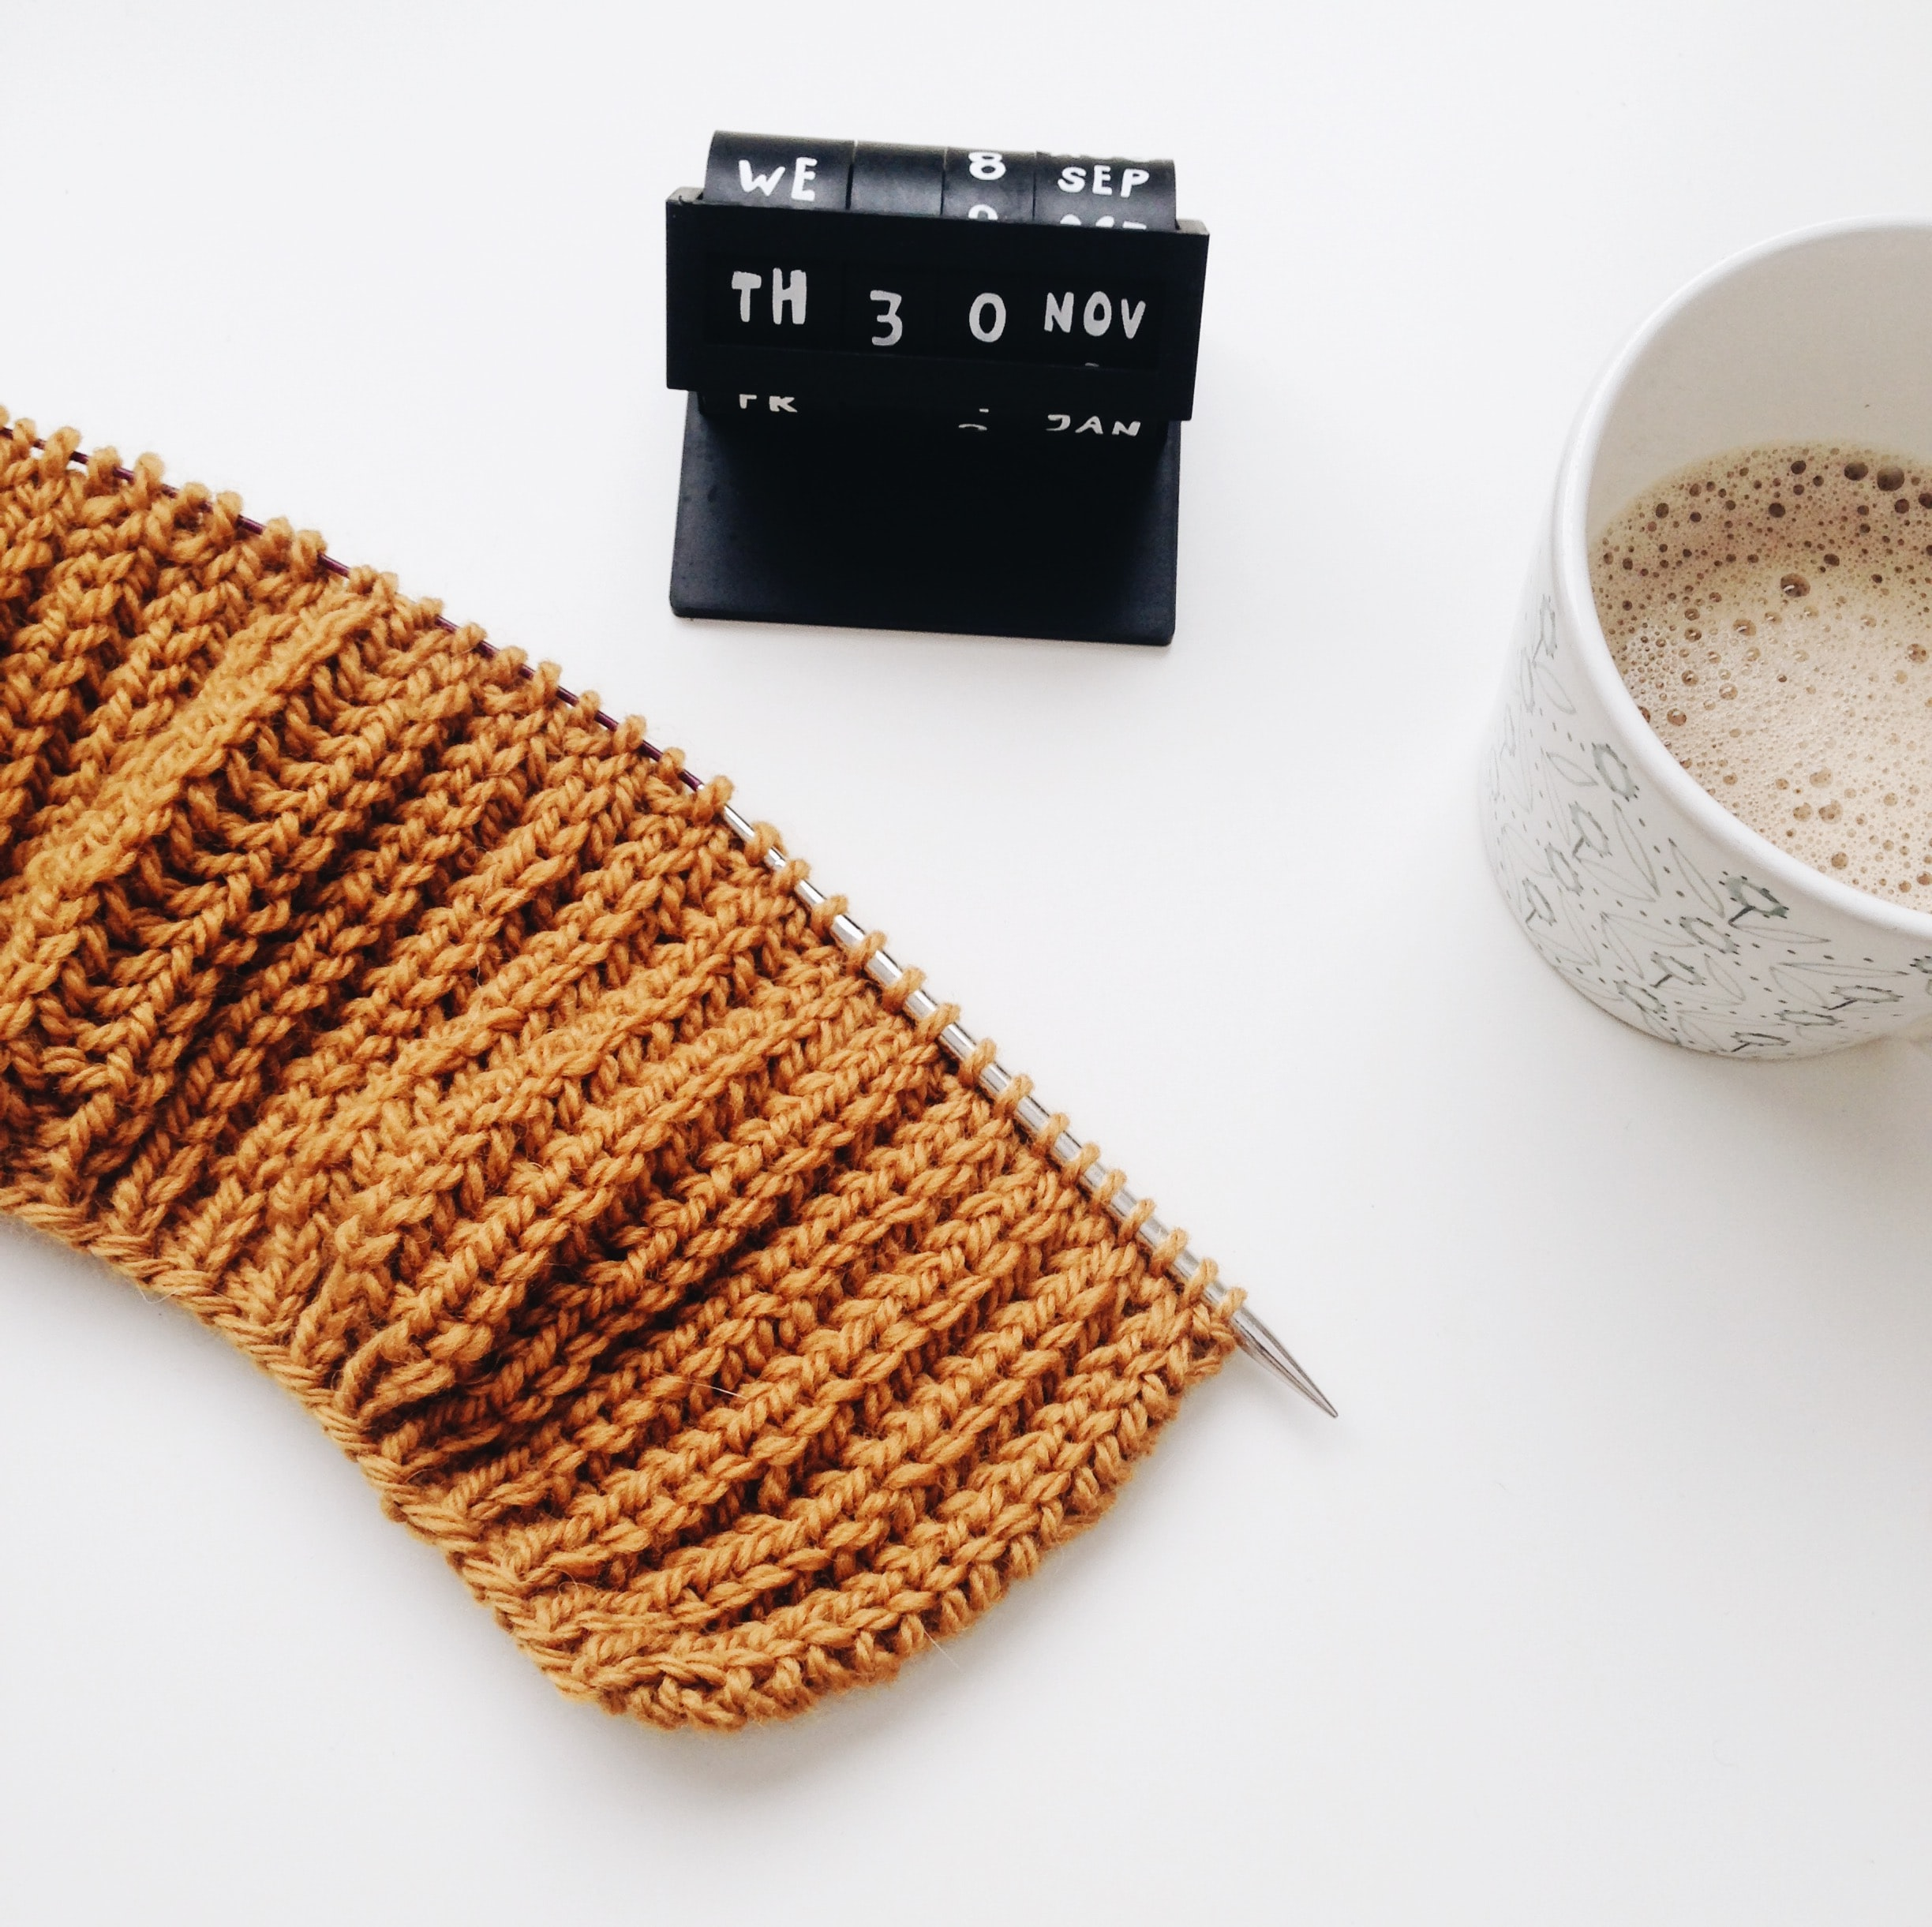 teacup beside knitted cloth